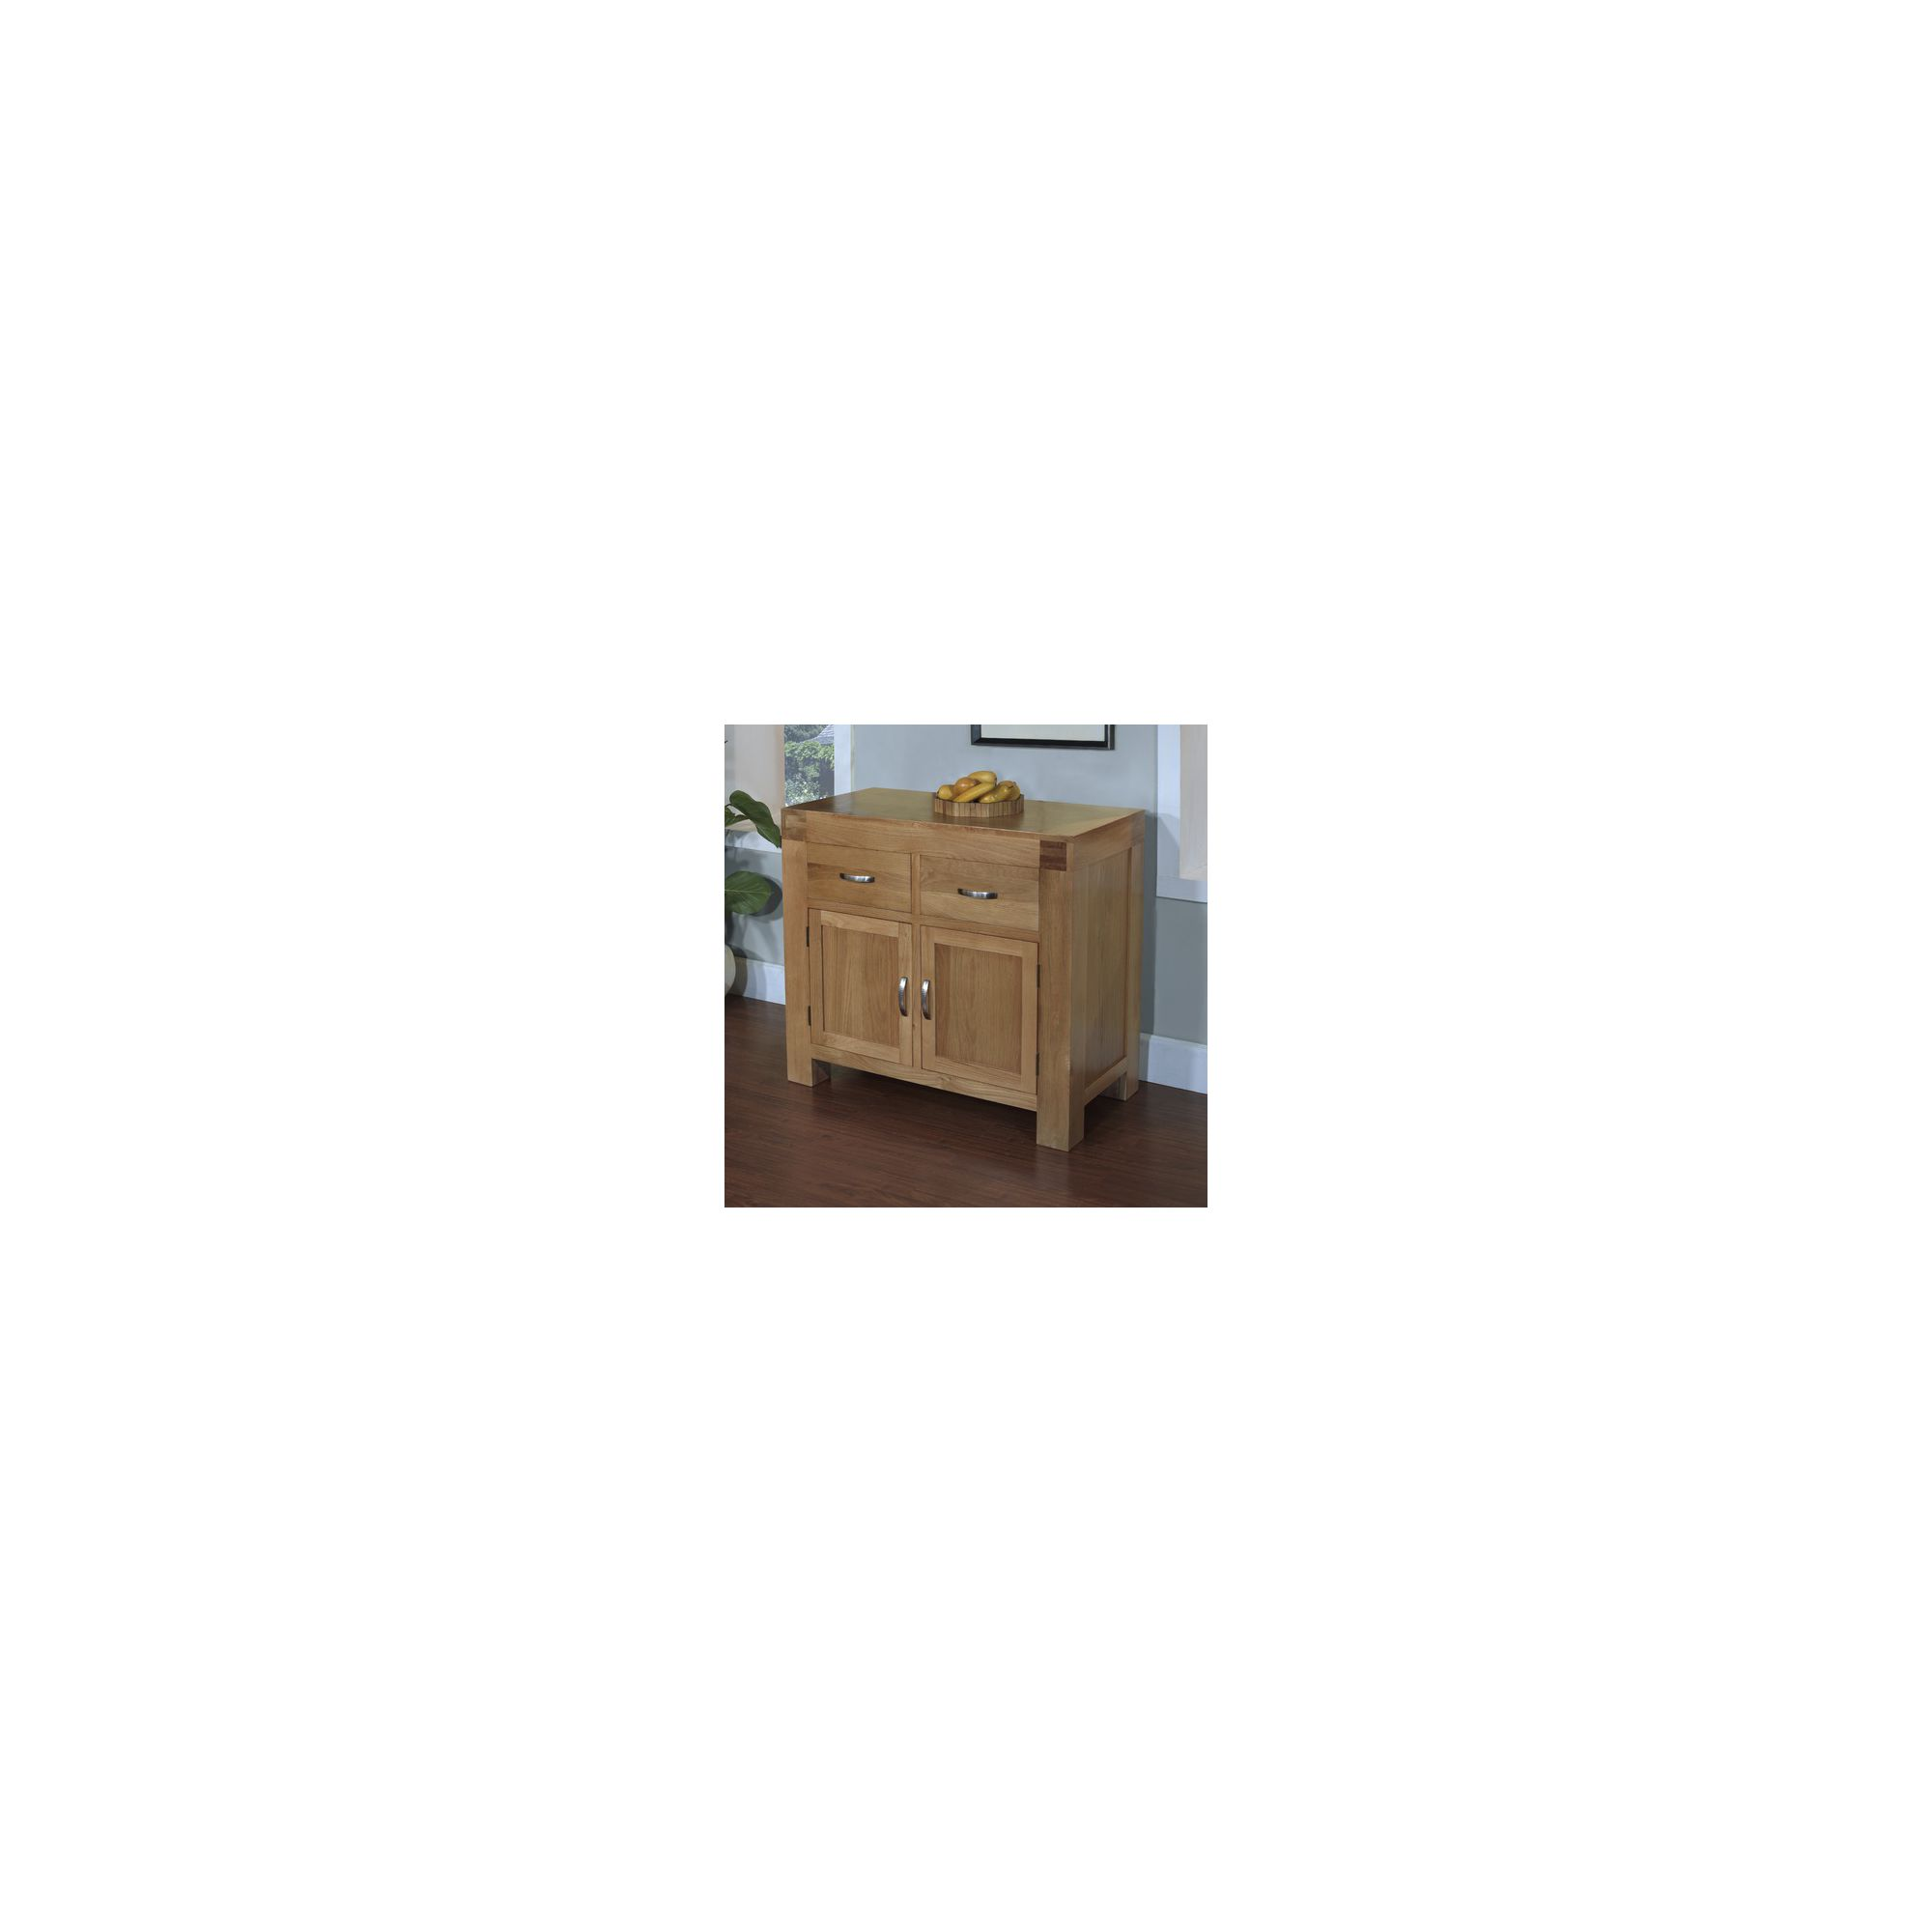 Hawkshead Rustic Oak Blonde Small Dresser Base at Tesco Direct